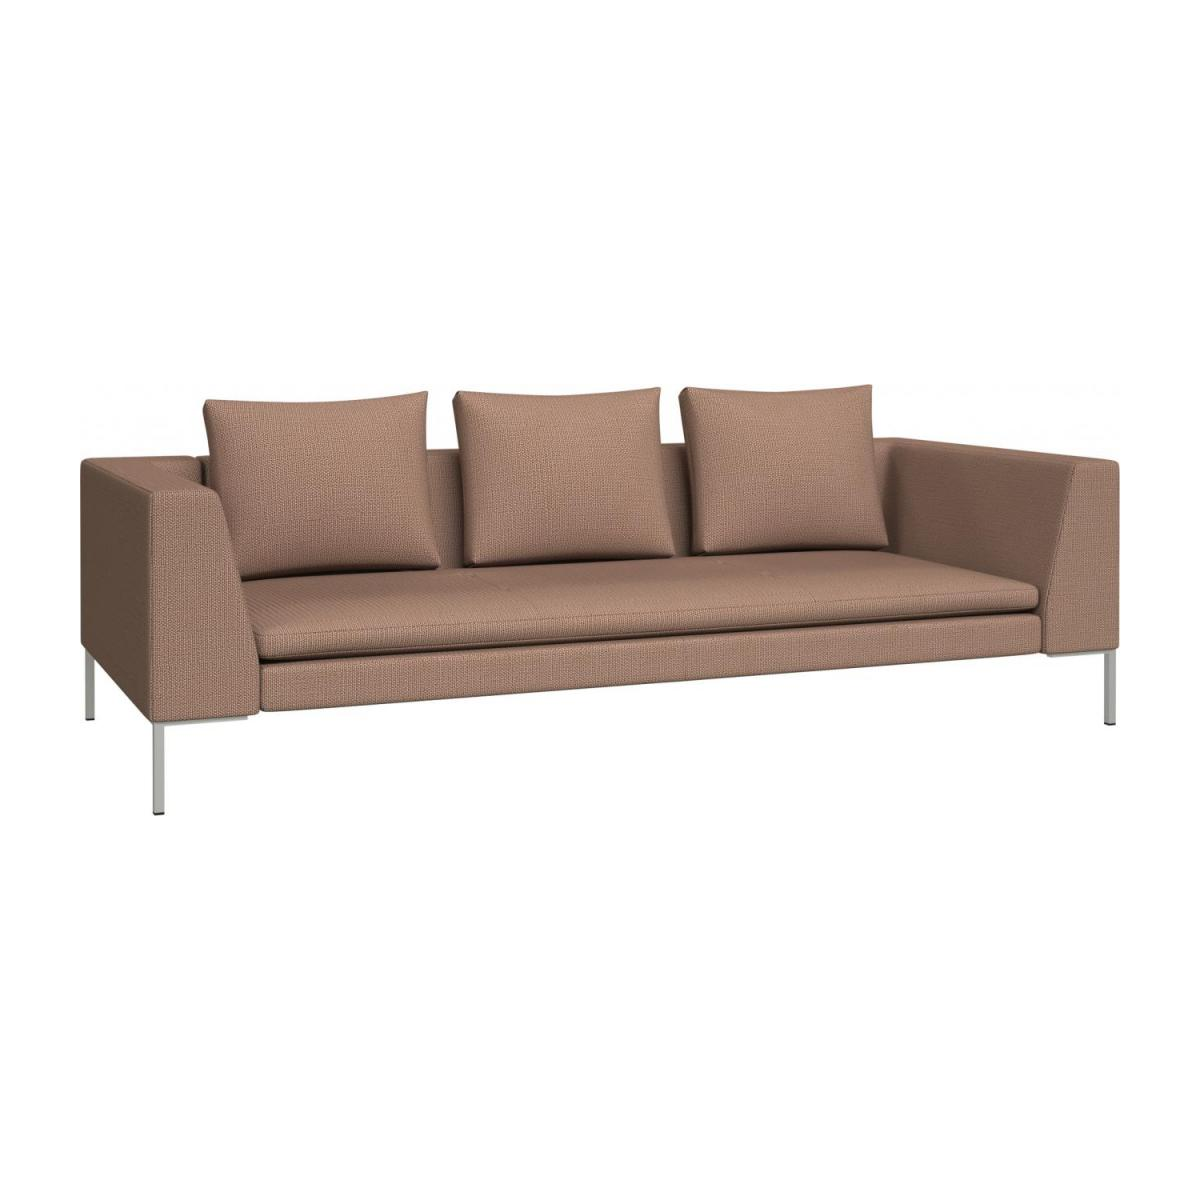 3 seater sofa in Fasoli fabric, jatoba brown